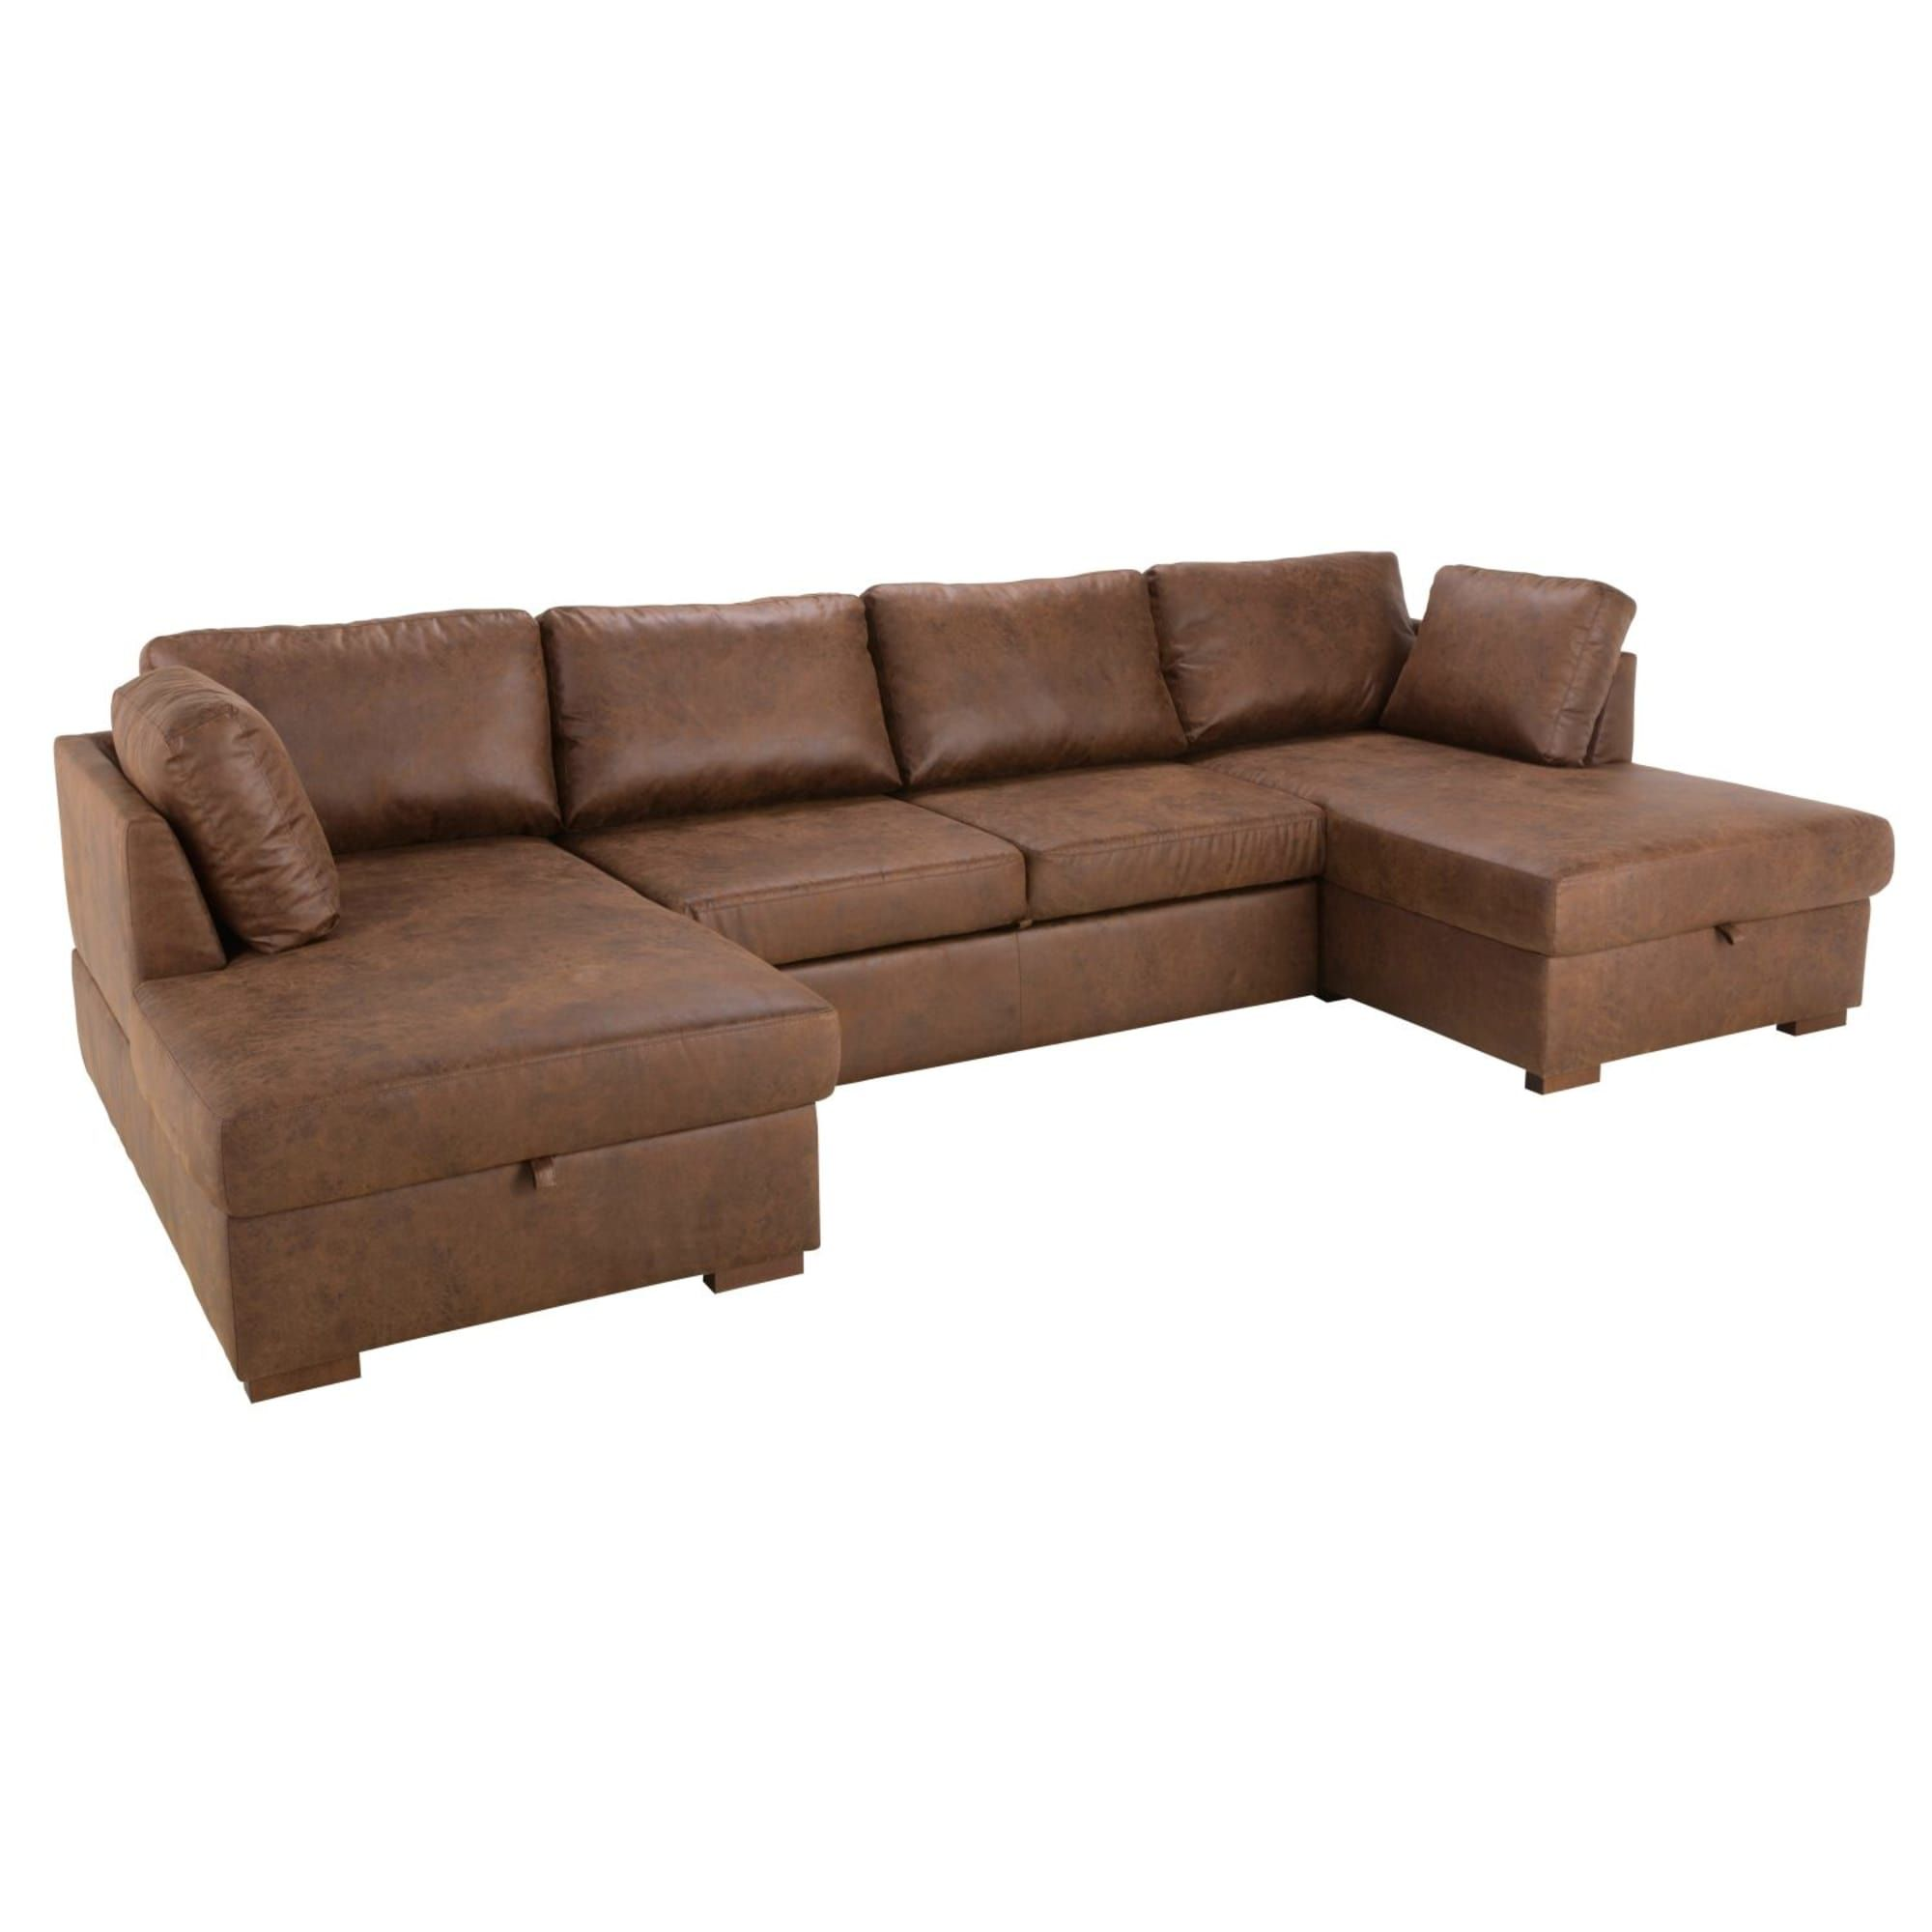 Canape Lit Panoramique 7 Places En Microsuede Marron Living Room